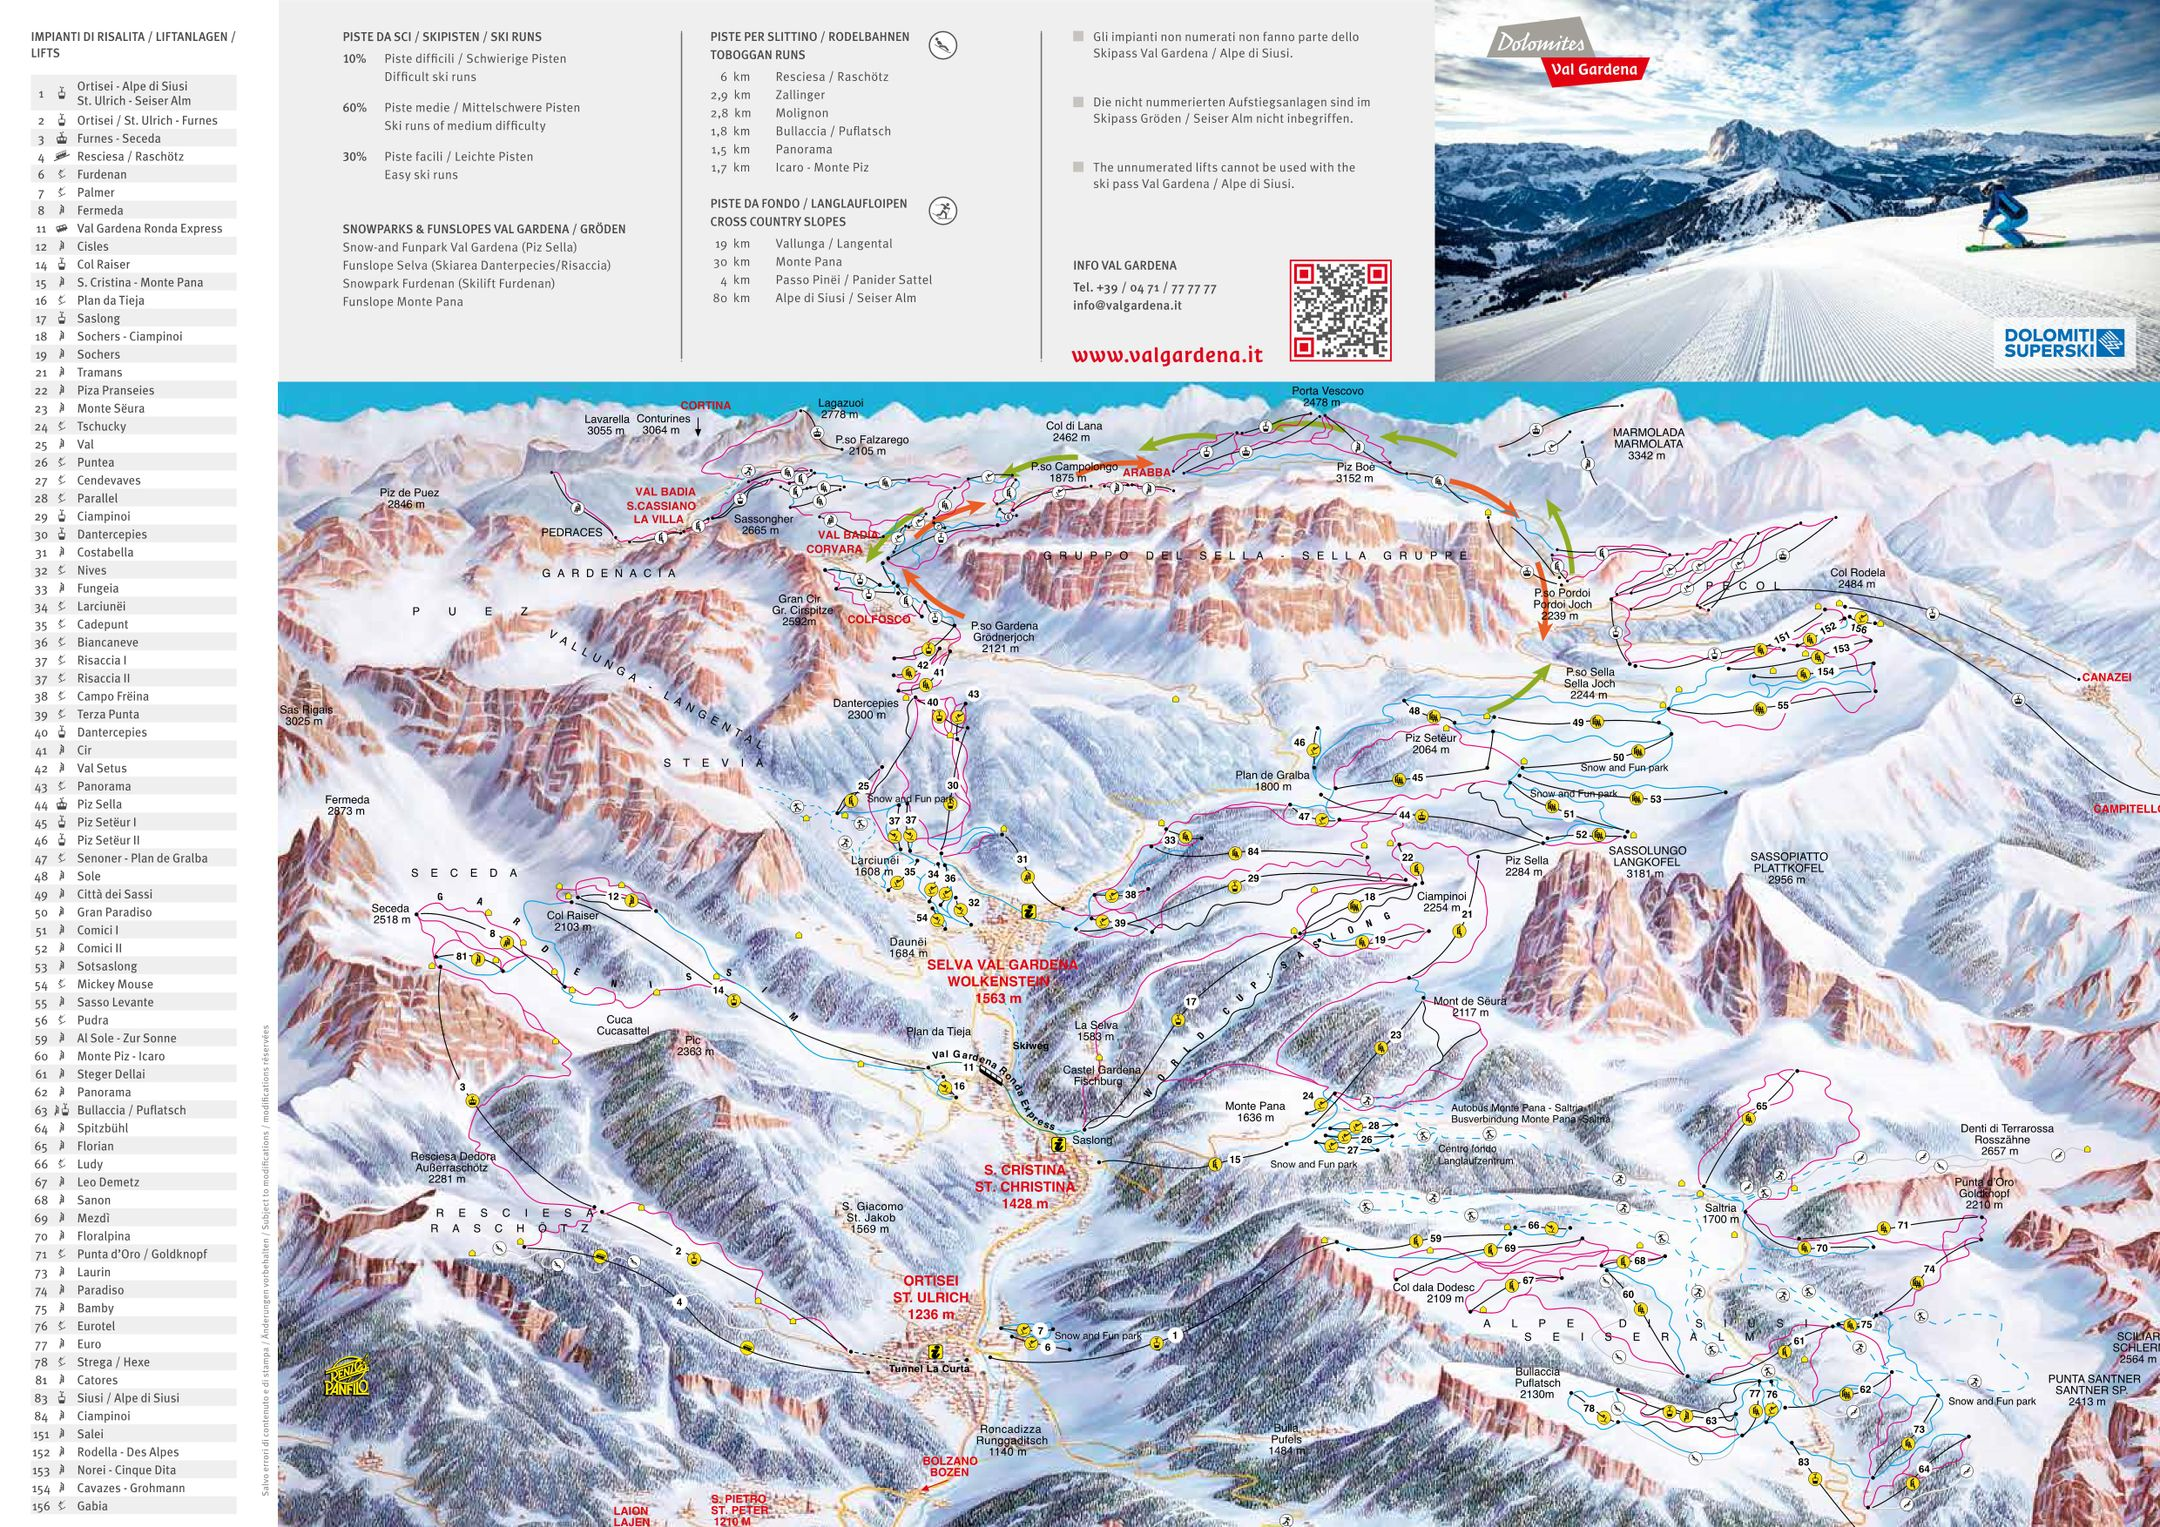 Val Gardena ski-resort-trail-map Italy ripatrip